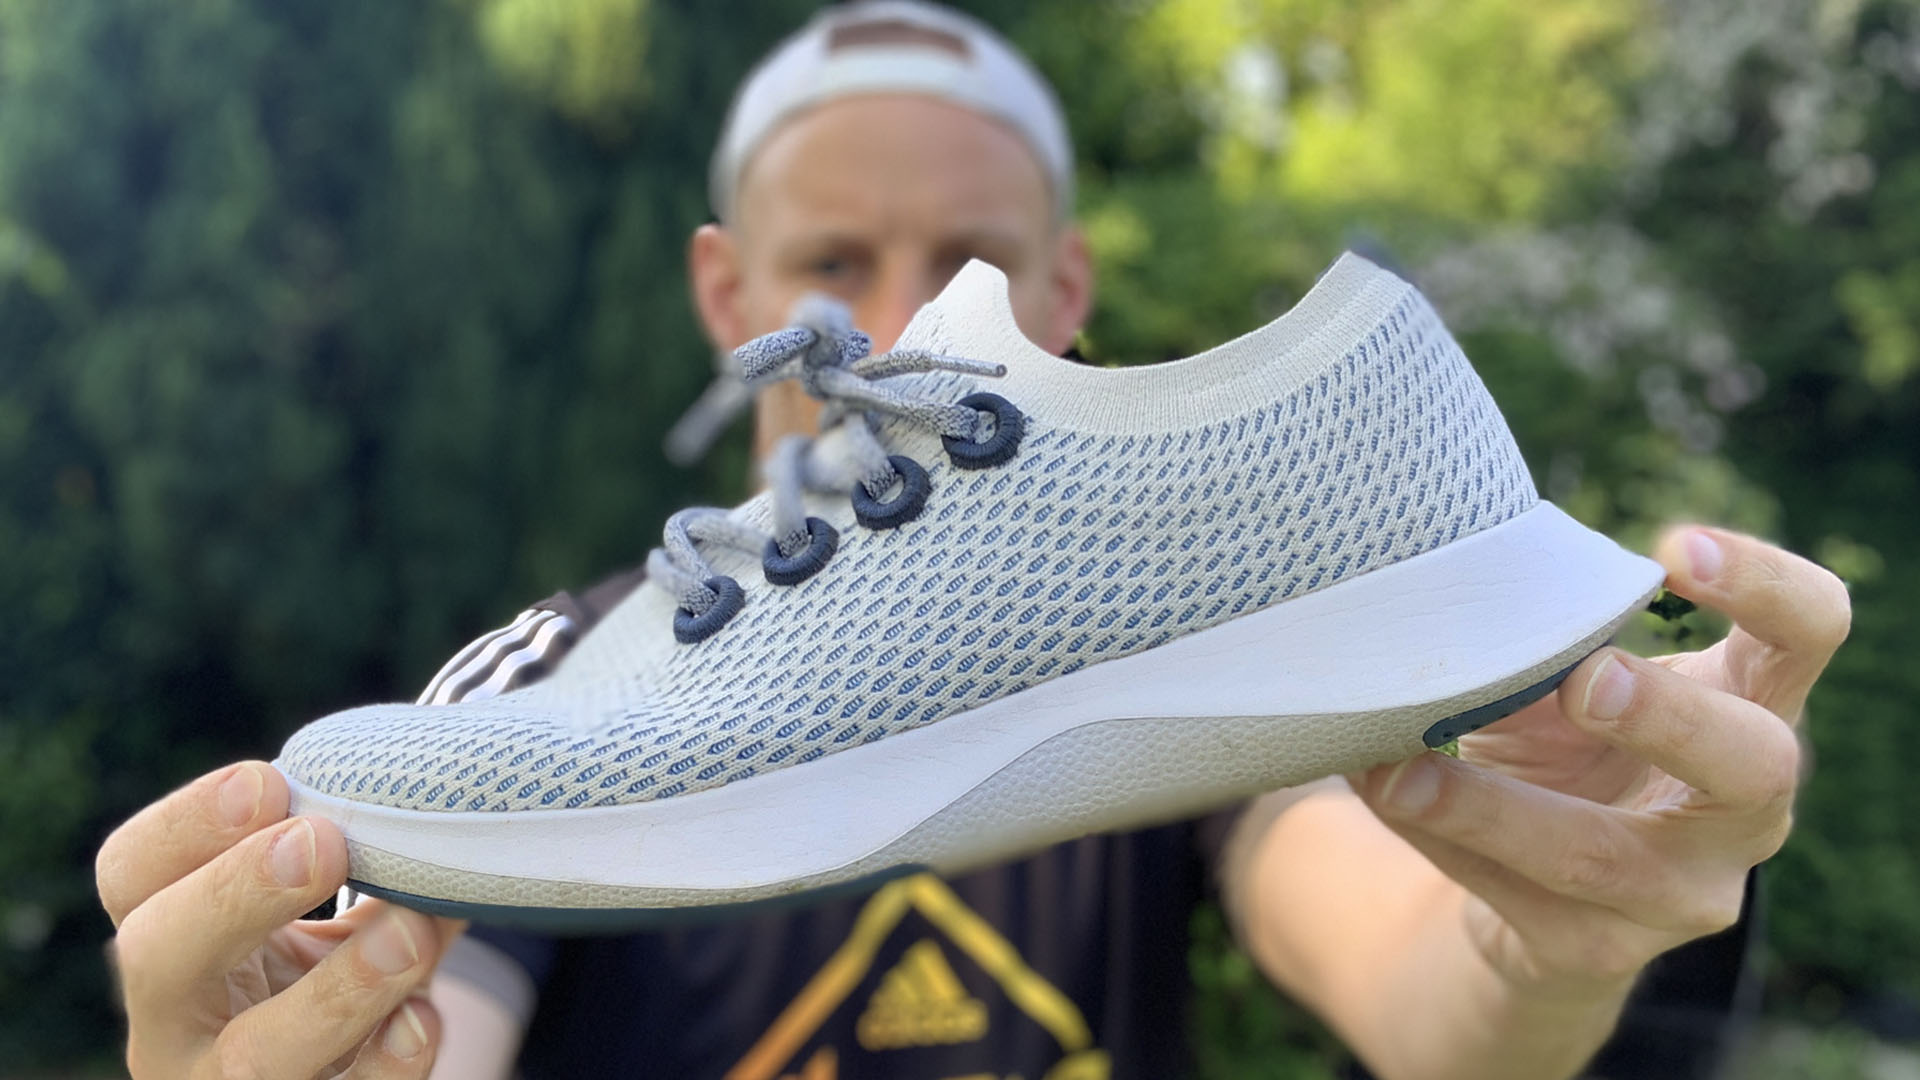 Allbirds Dasher Review: The eco running